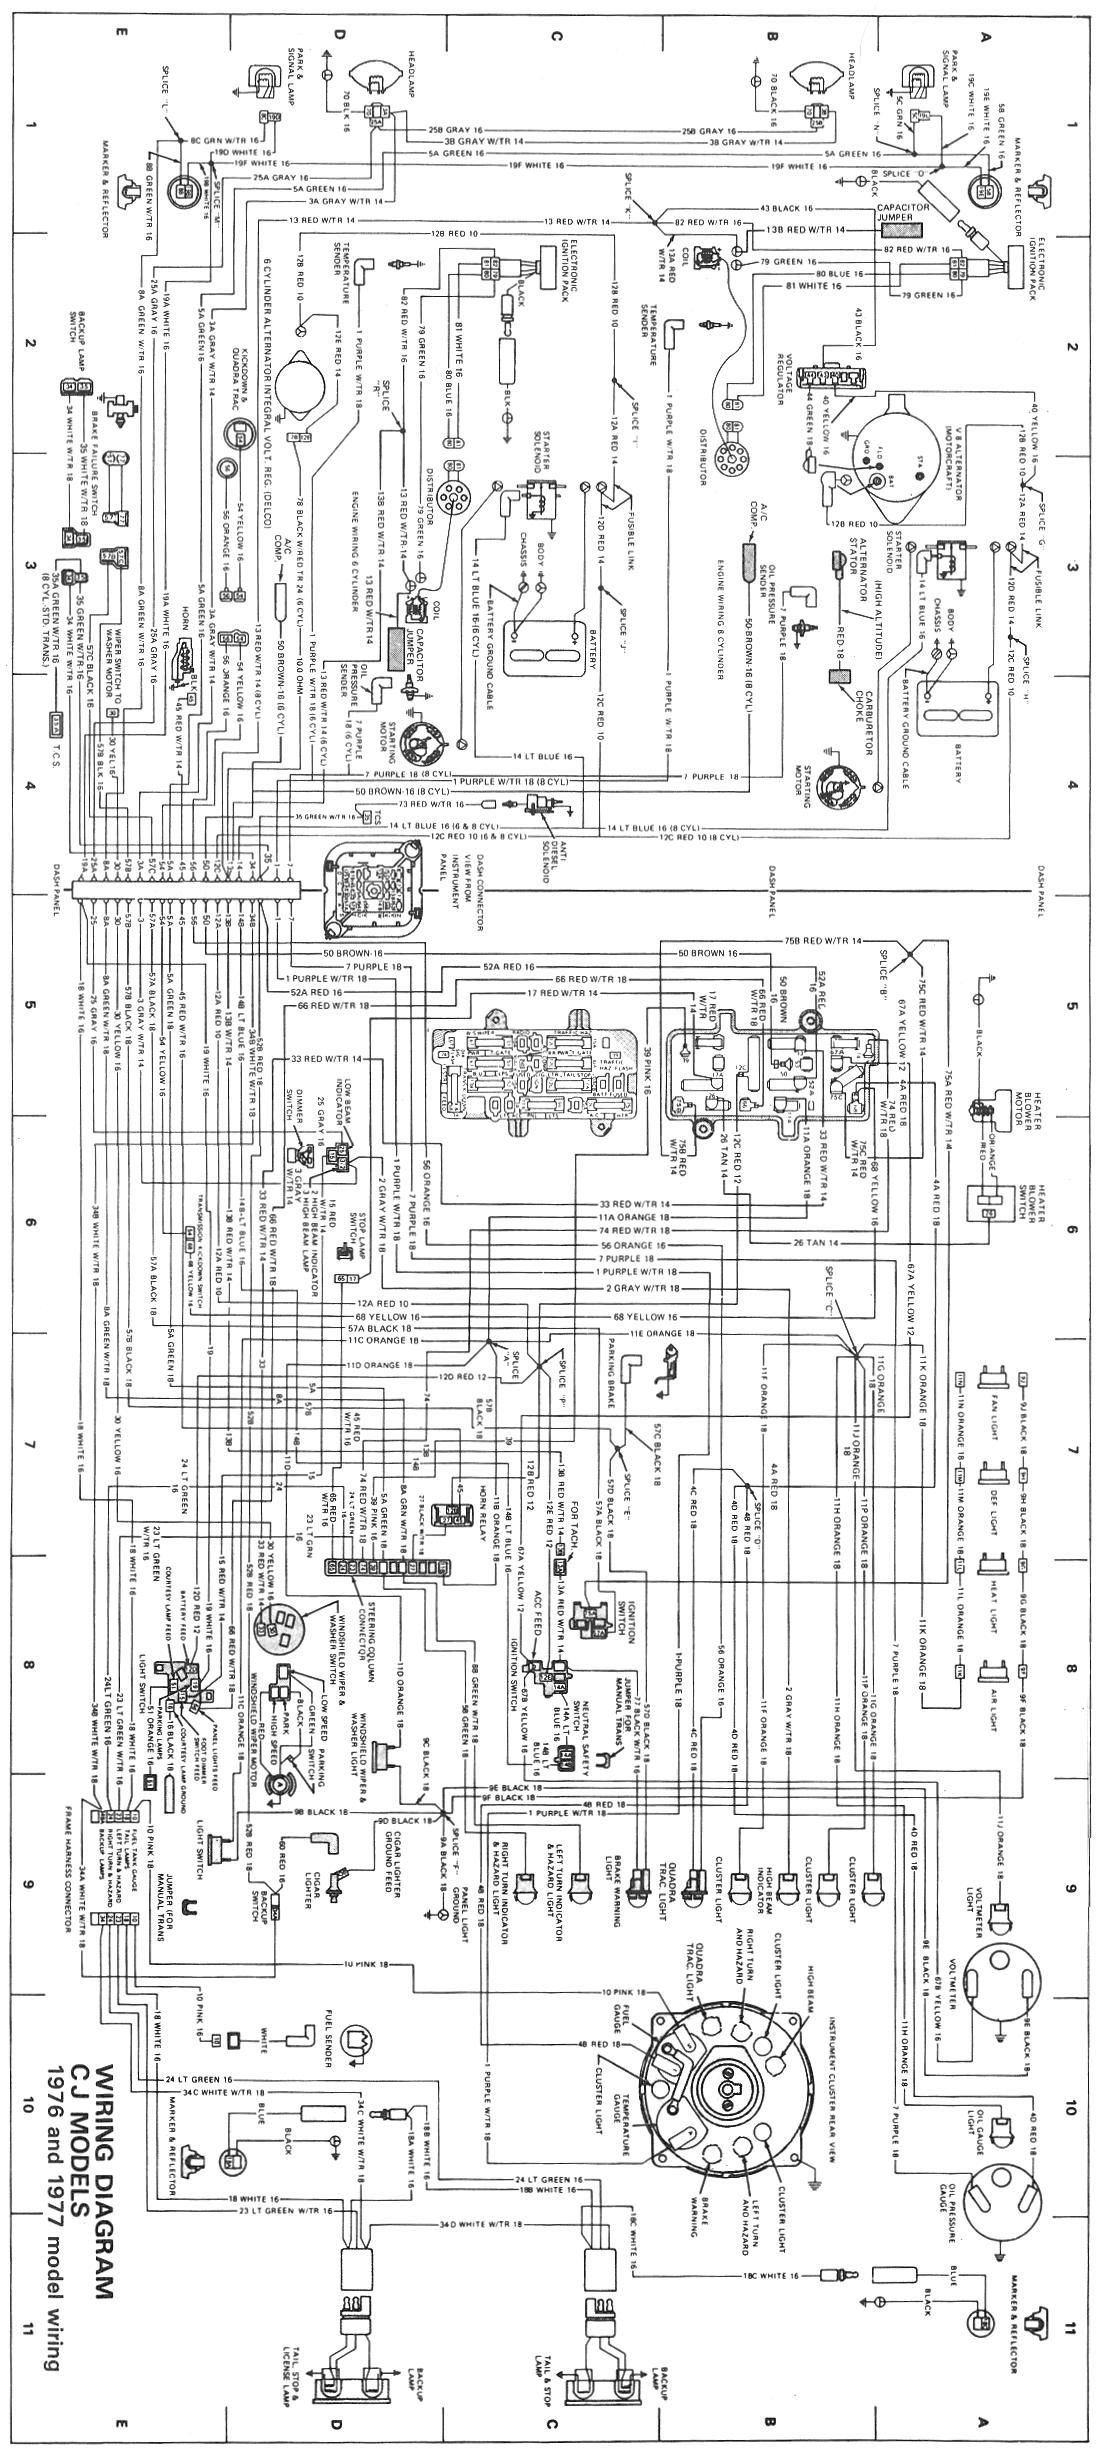 Jeep Wiring Diagrams - 1976 and 1977 CJ | Jeep cj7, Jeep, Jeep cj5 | 1980 Cj7 Wiring Schematic |  | Pinterest